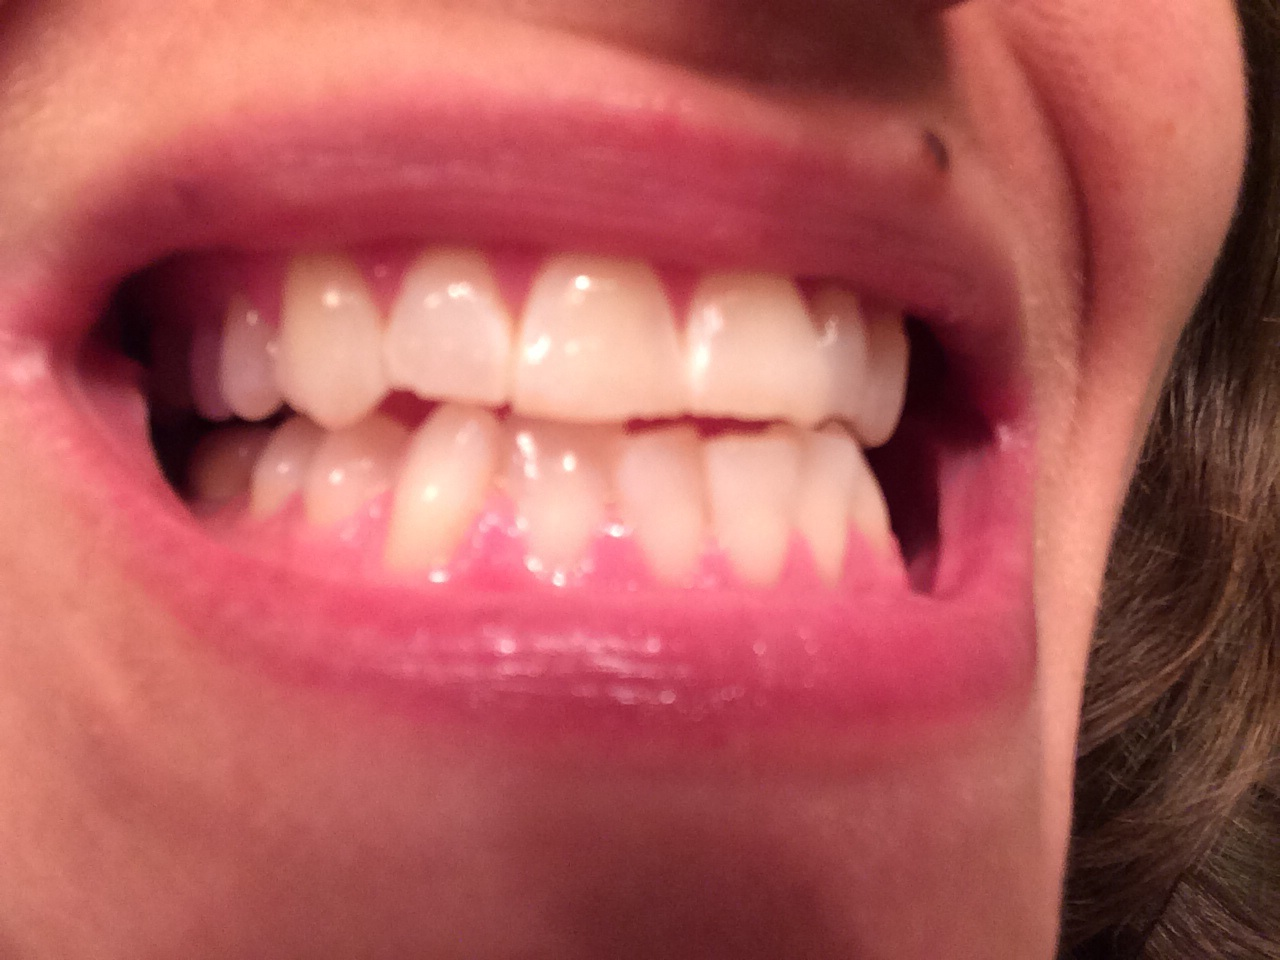 My chompers post-whitening.